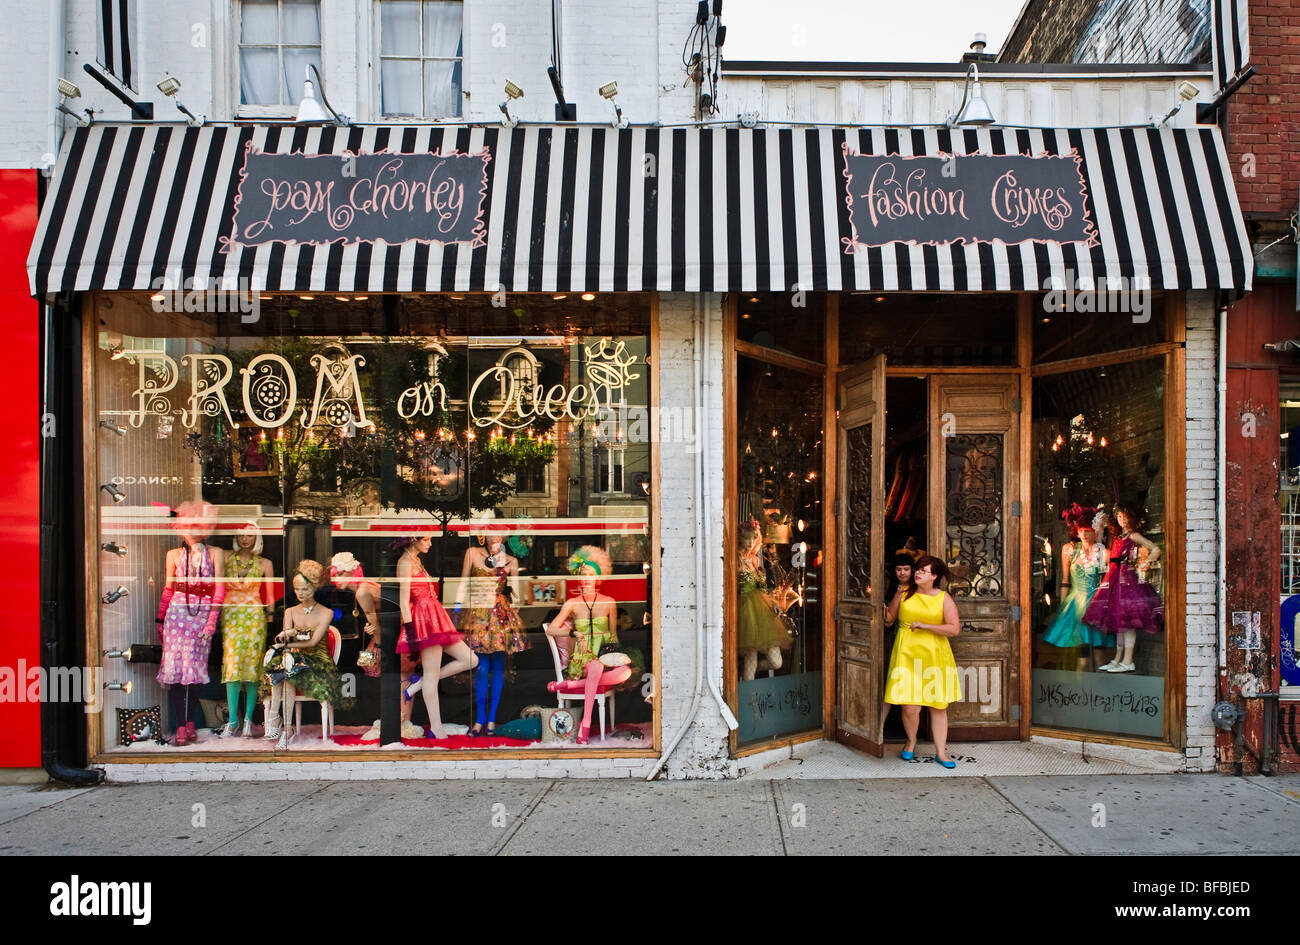 Clothing boutique store in Toronto, 'Pam Chorley', 'Fashion Crimes' - Stock Image